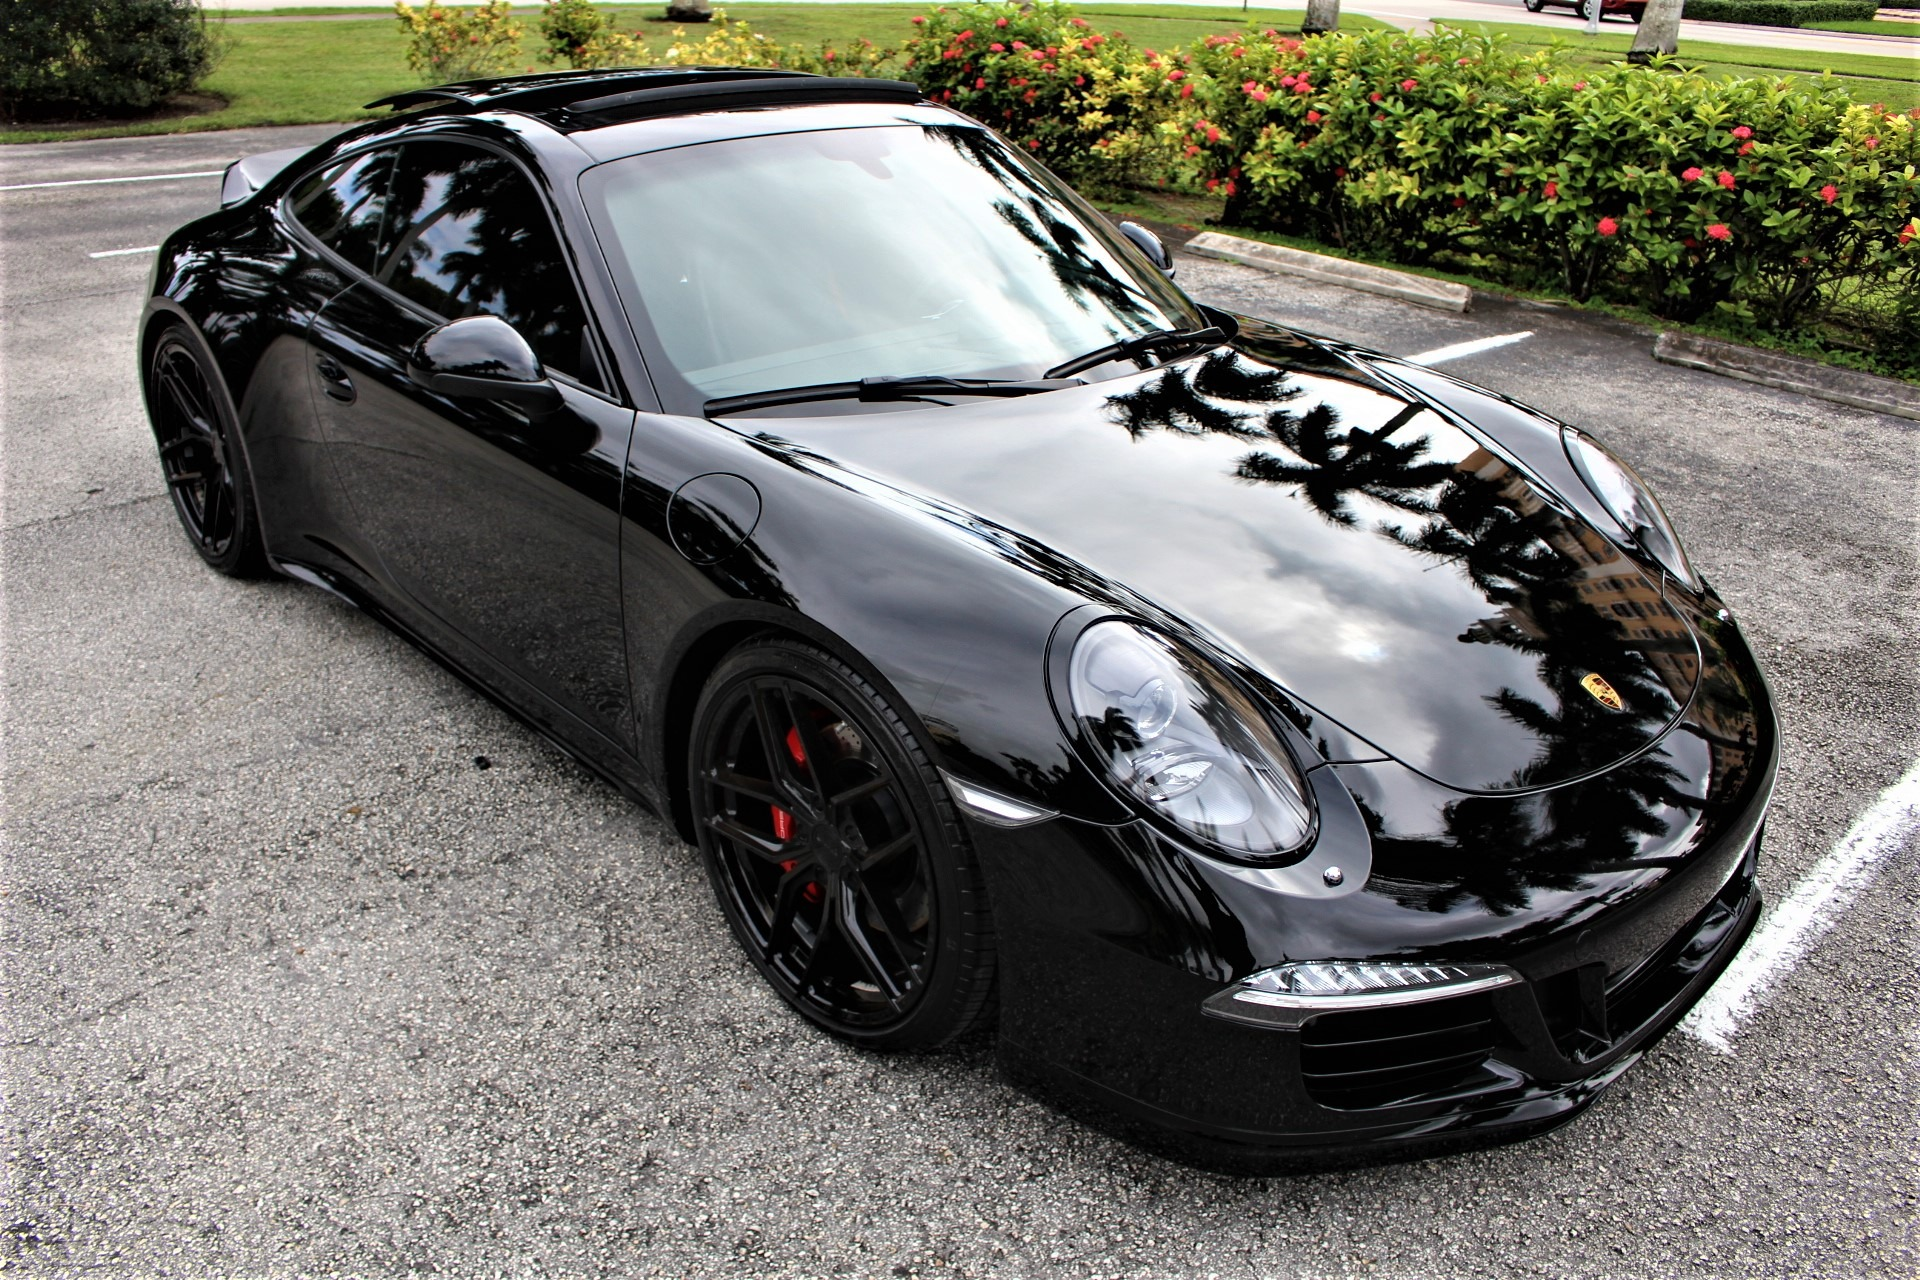 Used 2013 Porsche 911 Carrera 4S for sale Sold at The Gables Sports Cars in Miami FL 33146 2